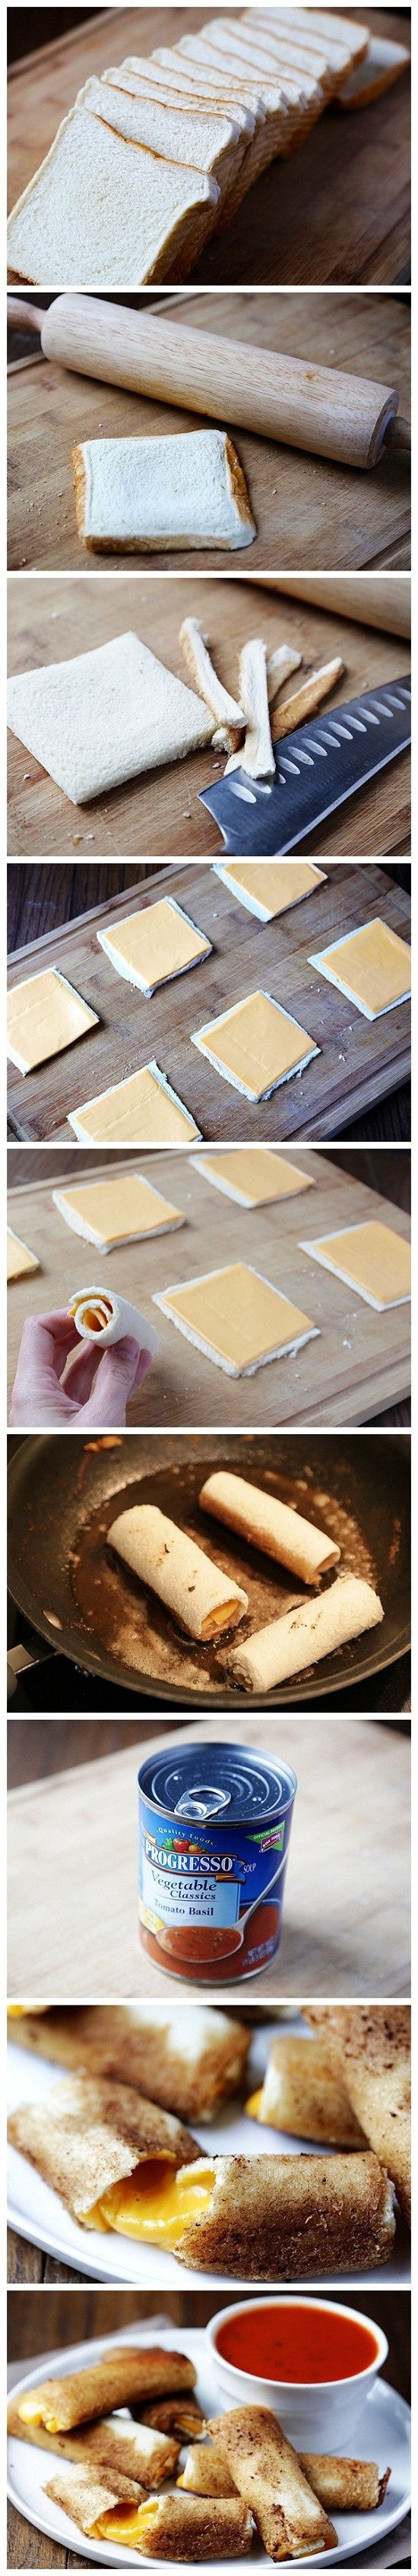 Quick and Easy Cheese Sticks | Community Post: 40 Creative Food Hacks That Will Change The Way You Cook